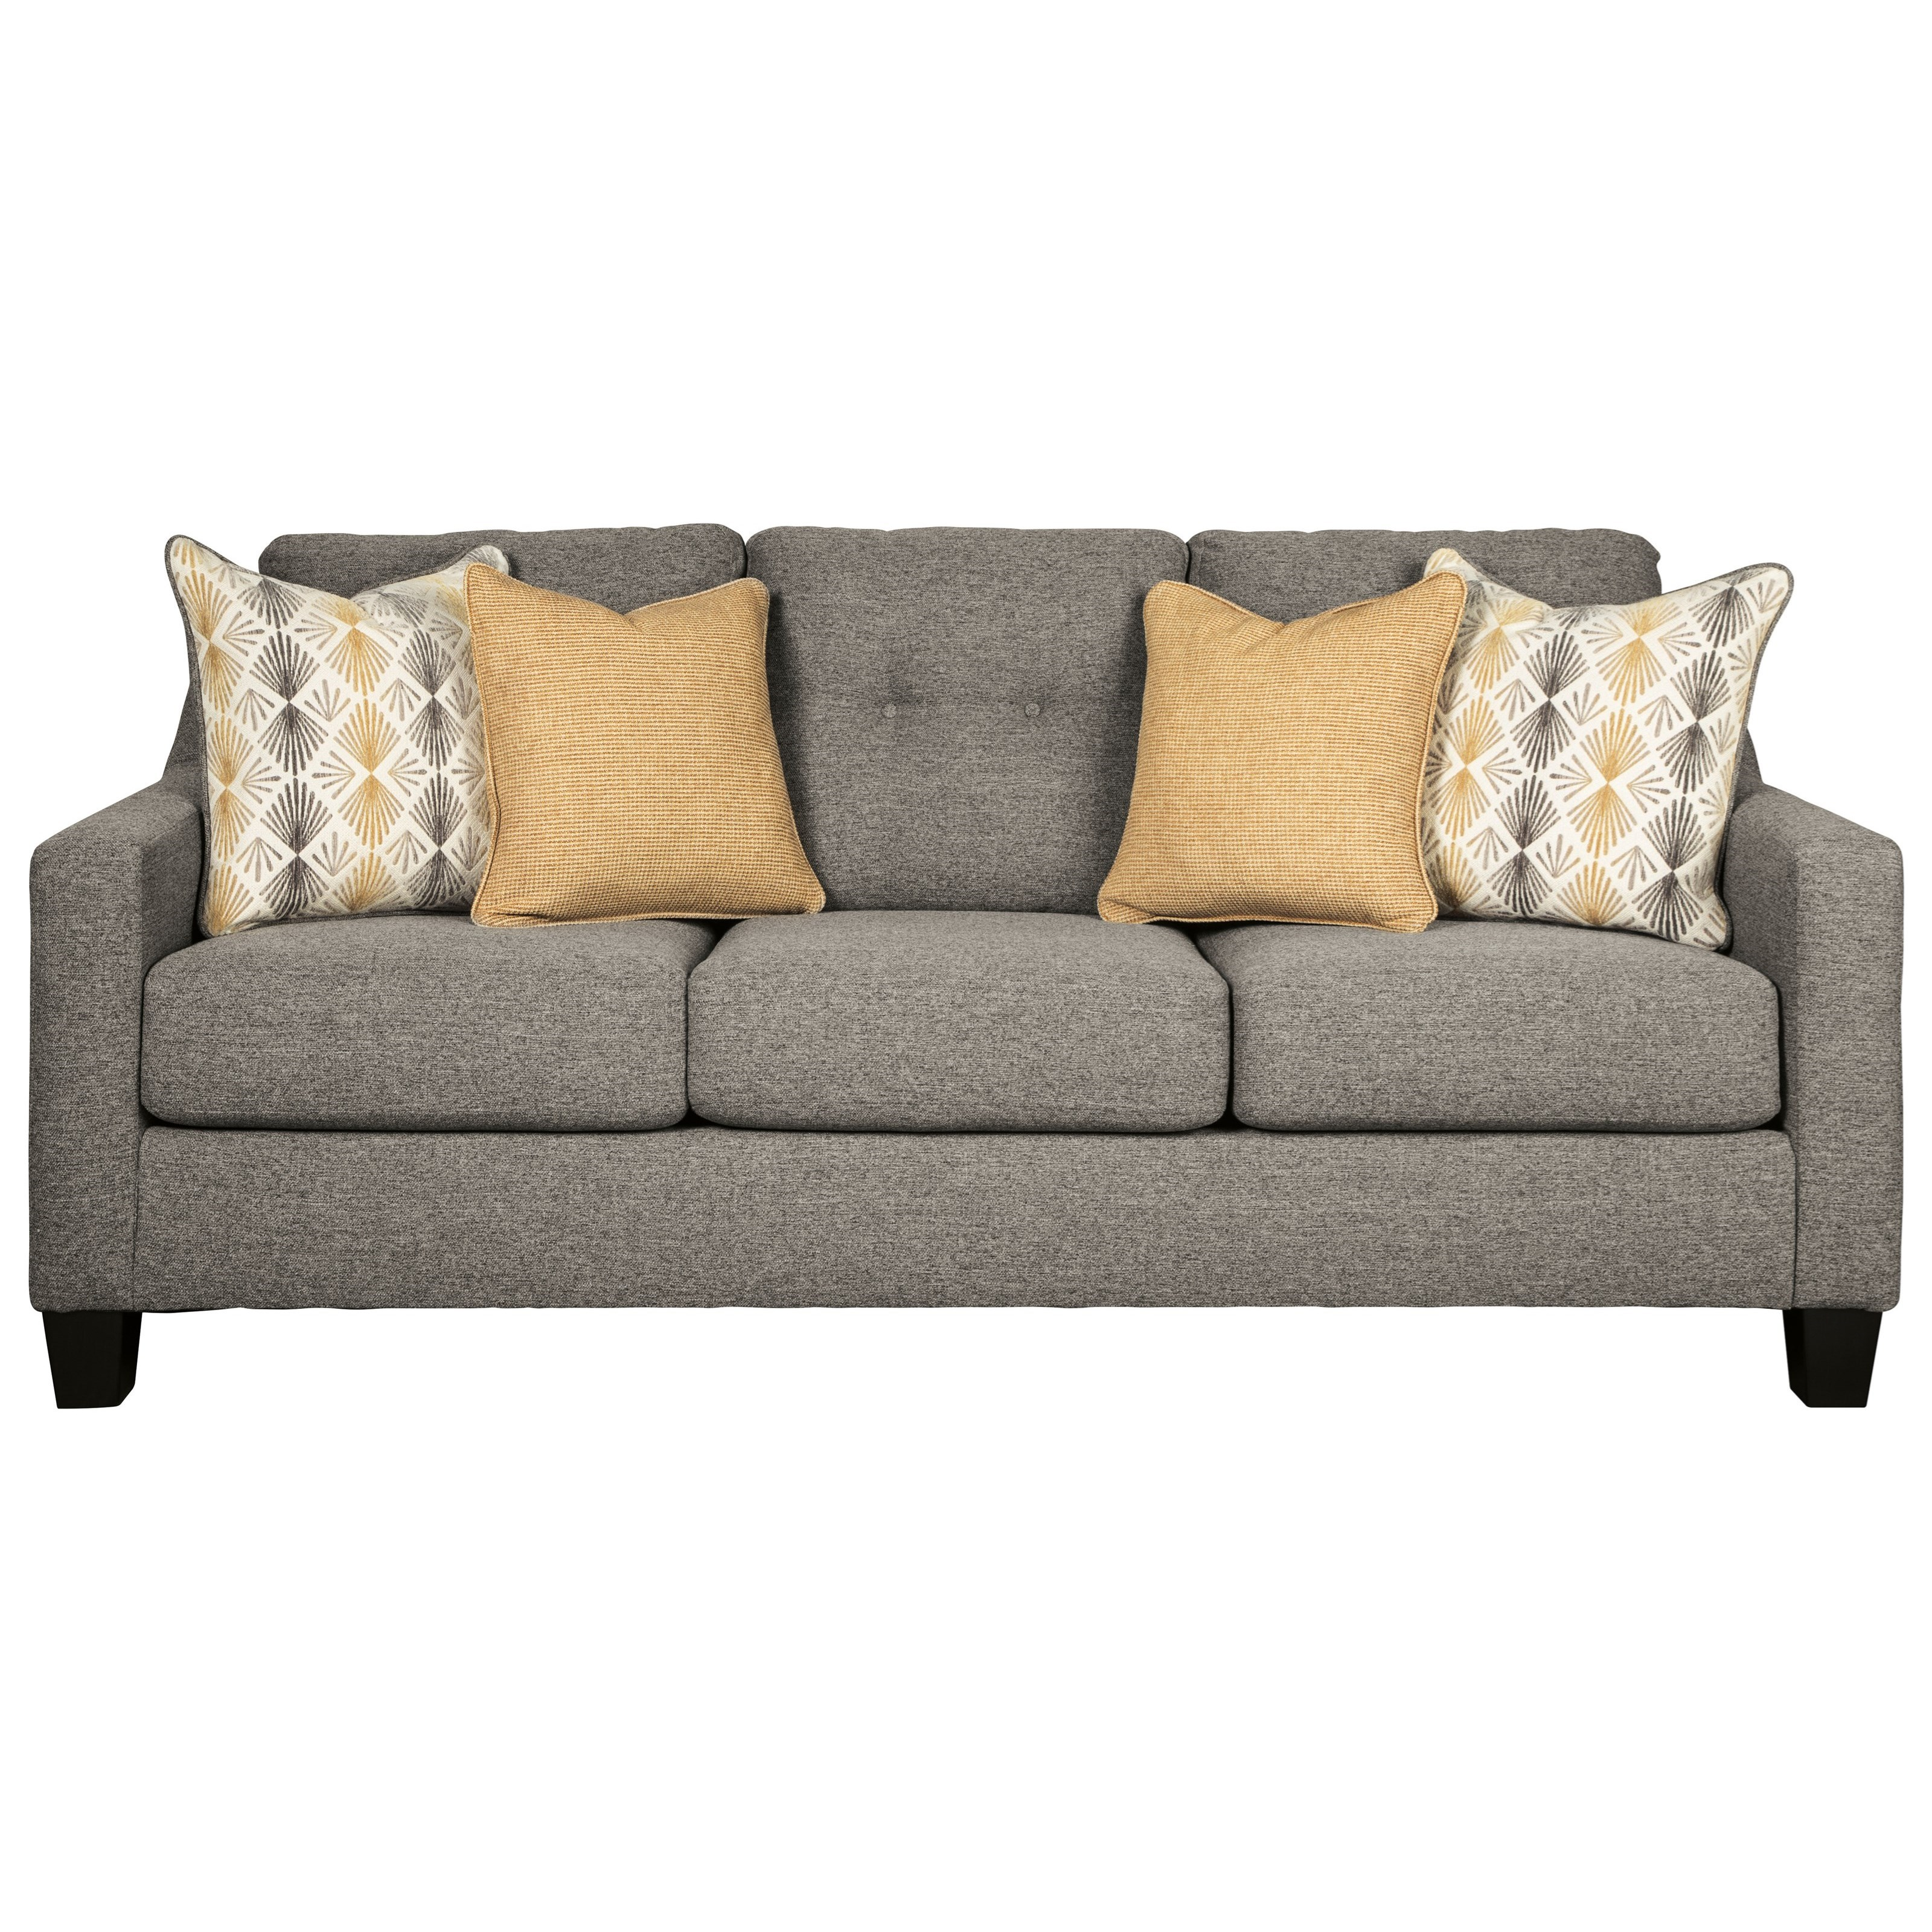 Benchcraft Daylon Contemporary Queen Sofa Sleeper With